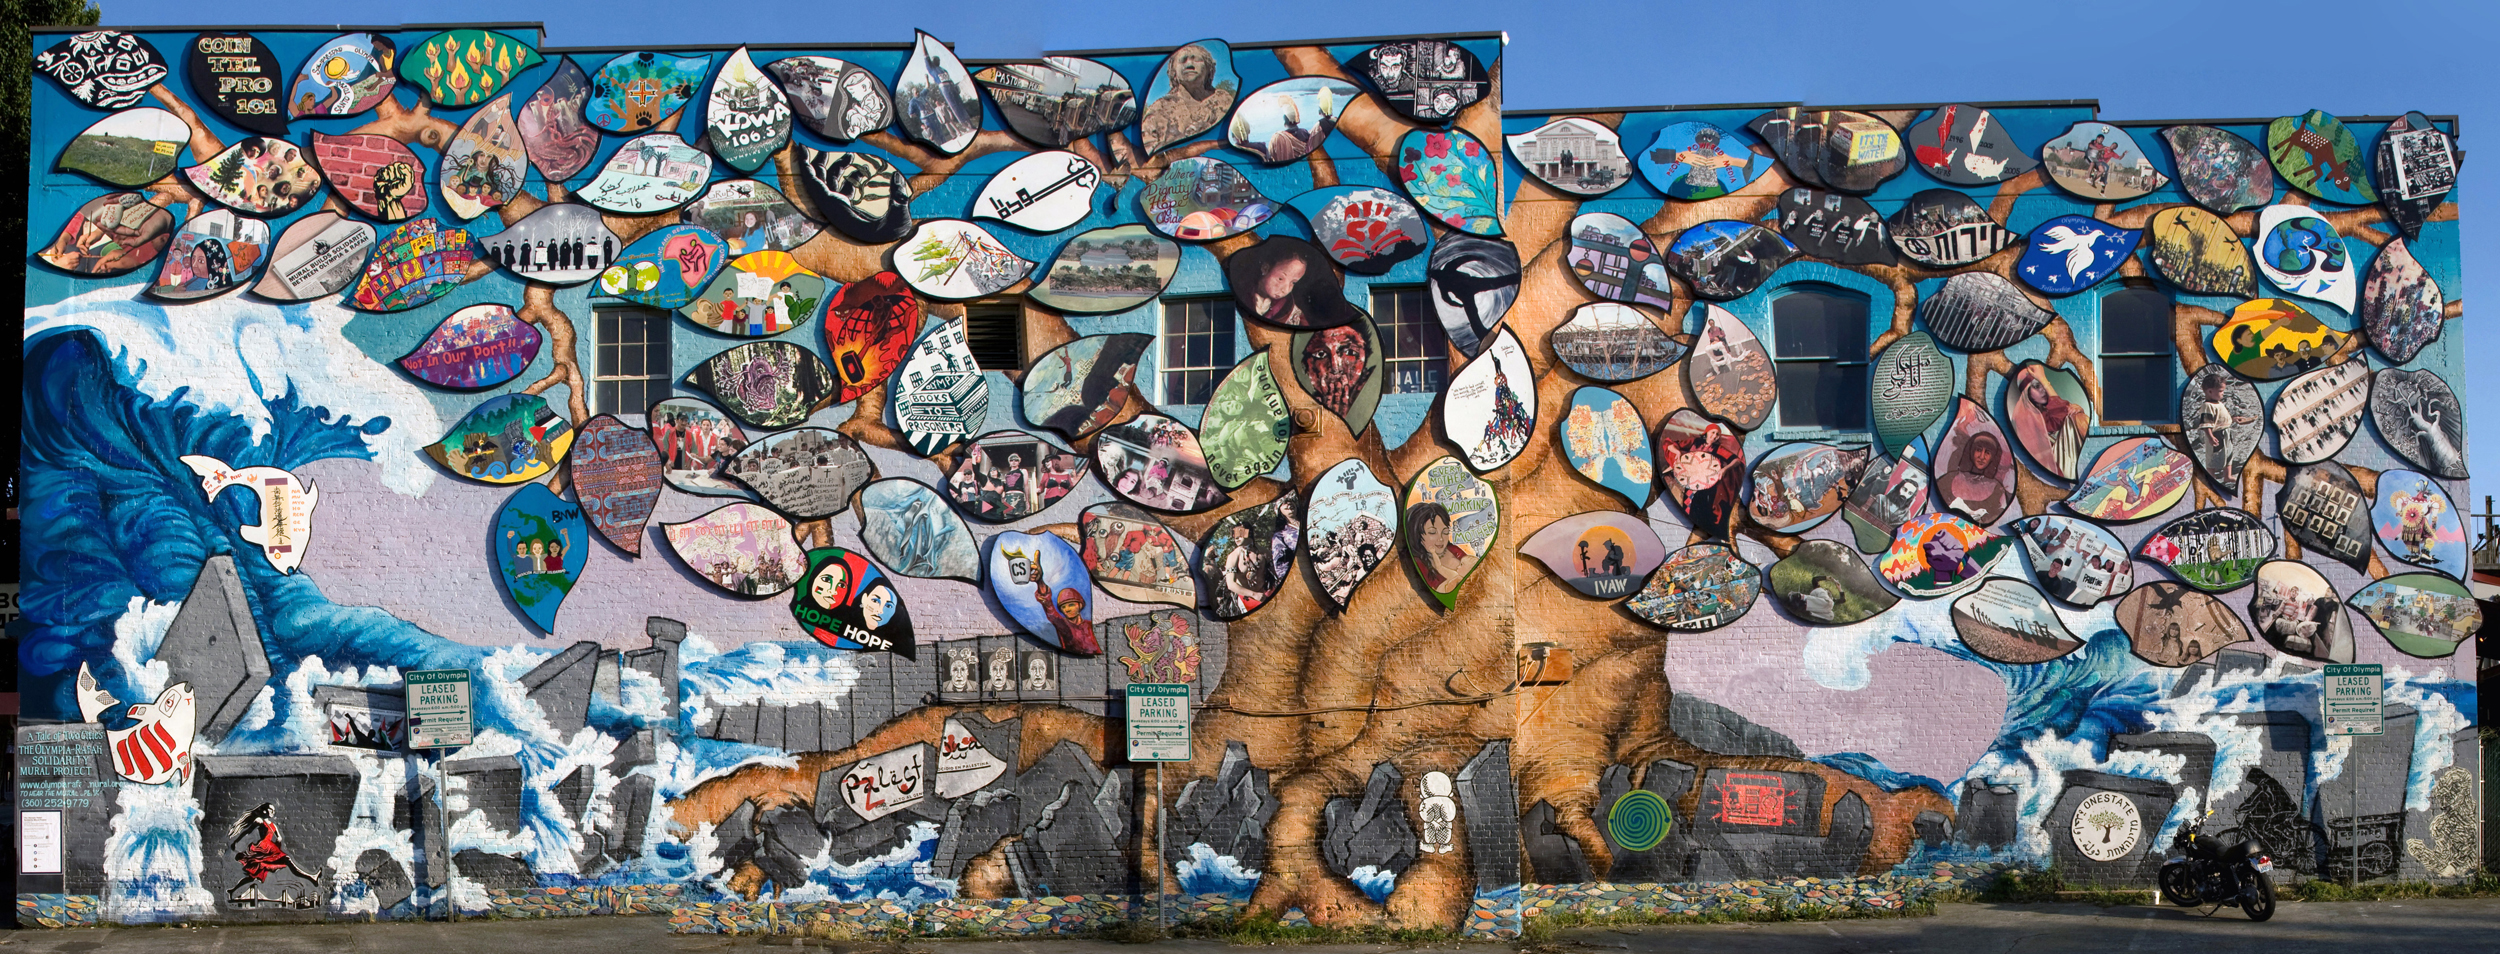 The completed Olympia-Rafah Mural Project, with art from contributors around the world.